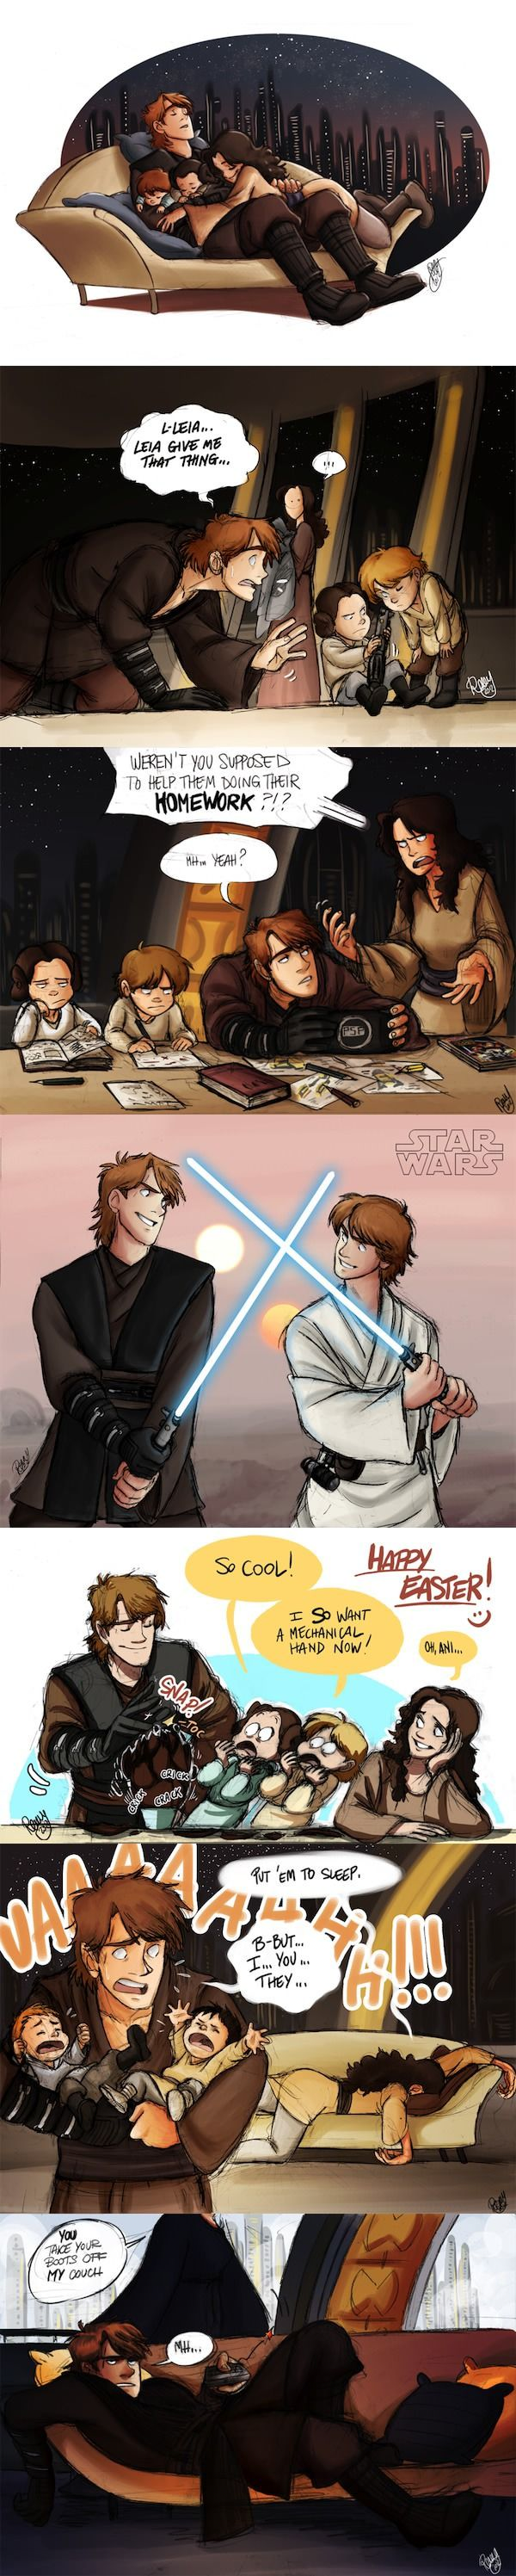 If Anakin Skywalker had never become Darth Vader. STOP IT. The feels… they hurt me so.